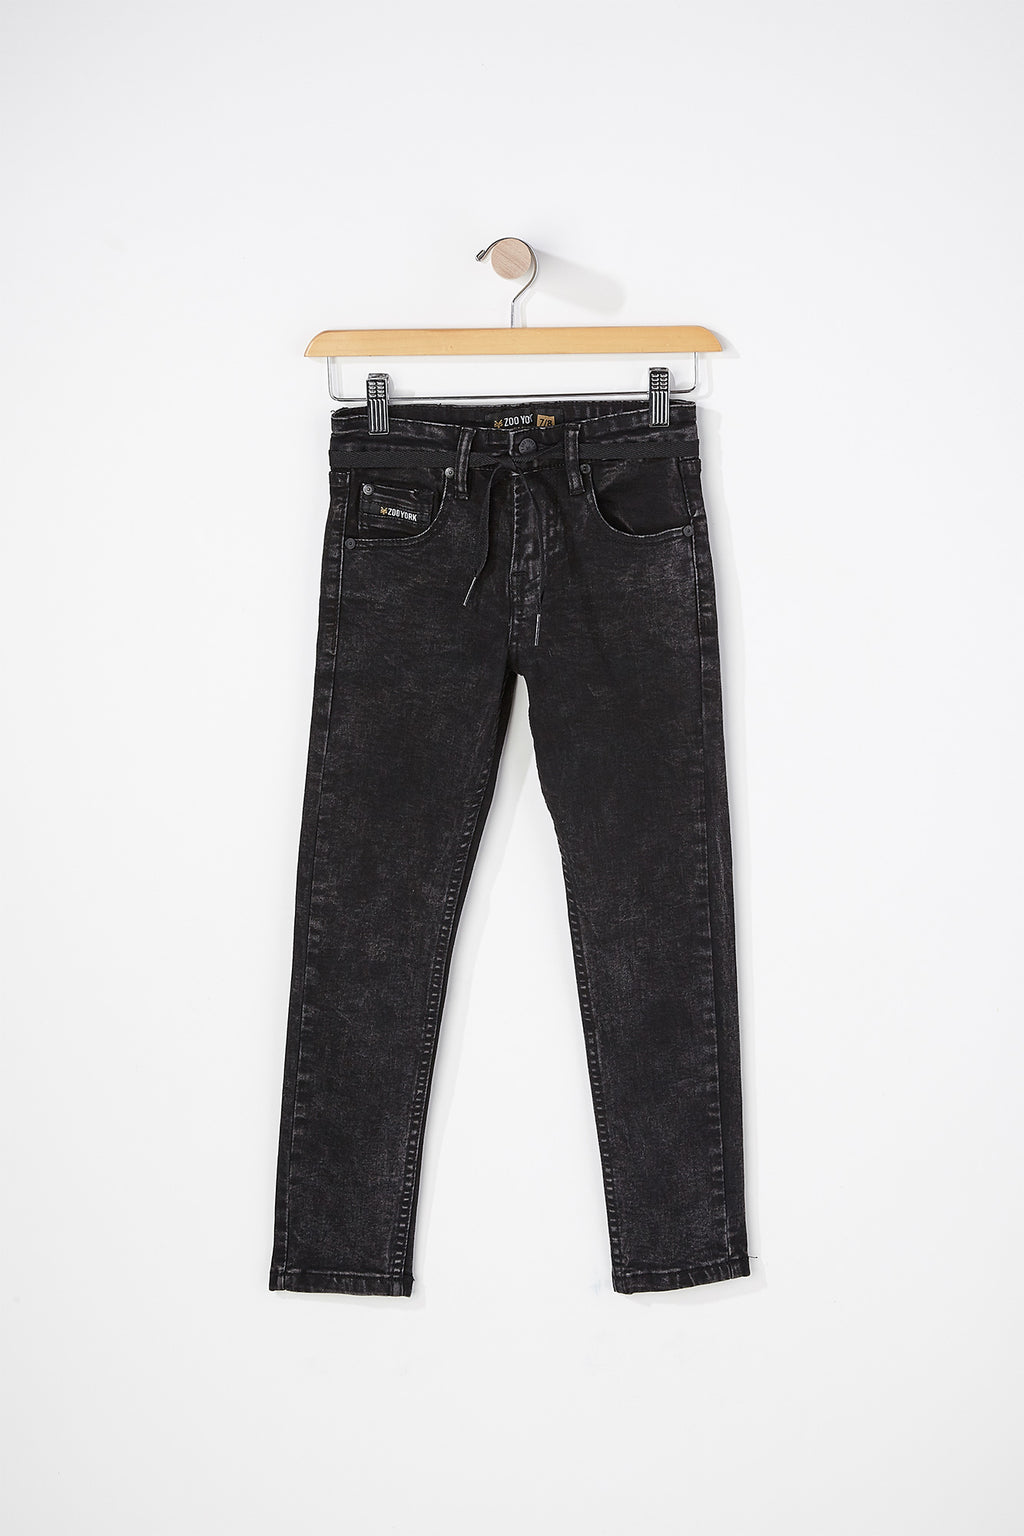 Zoo York Boys Skinniest Black Jeans